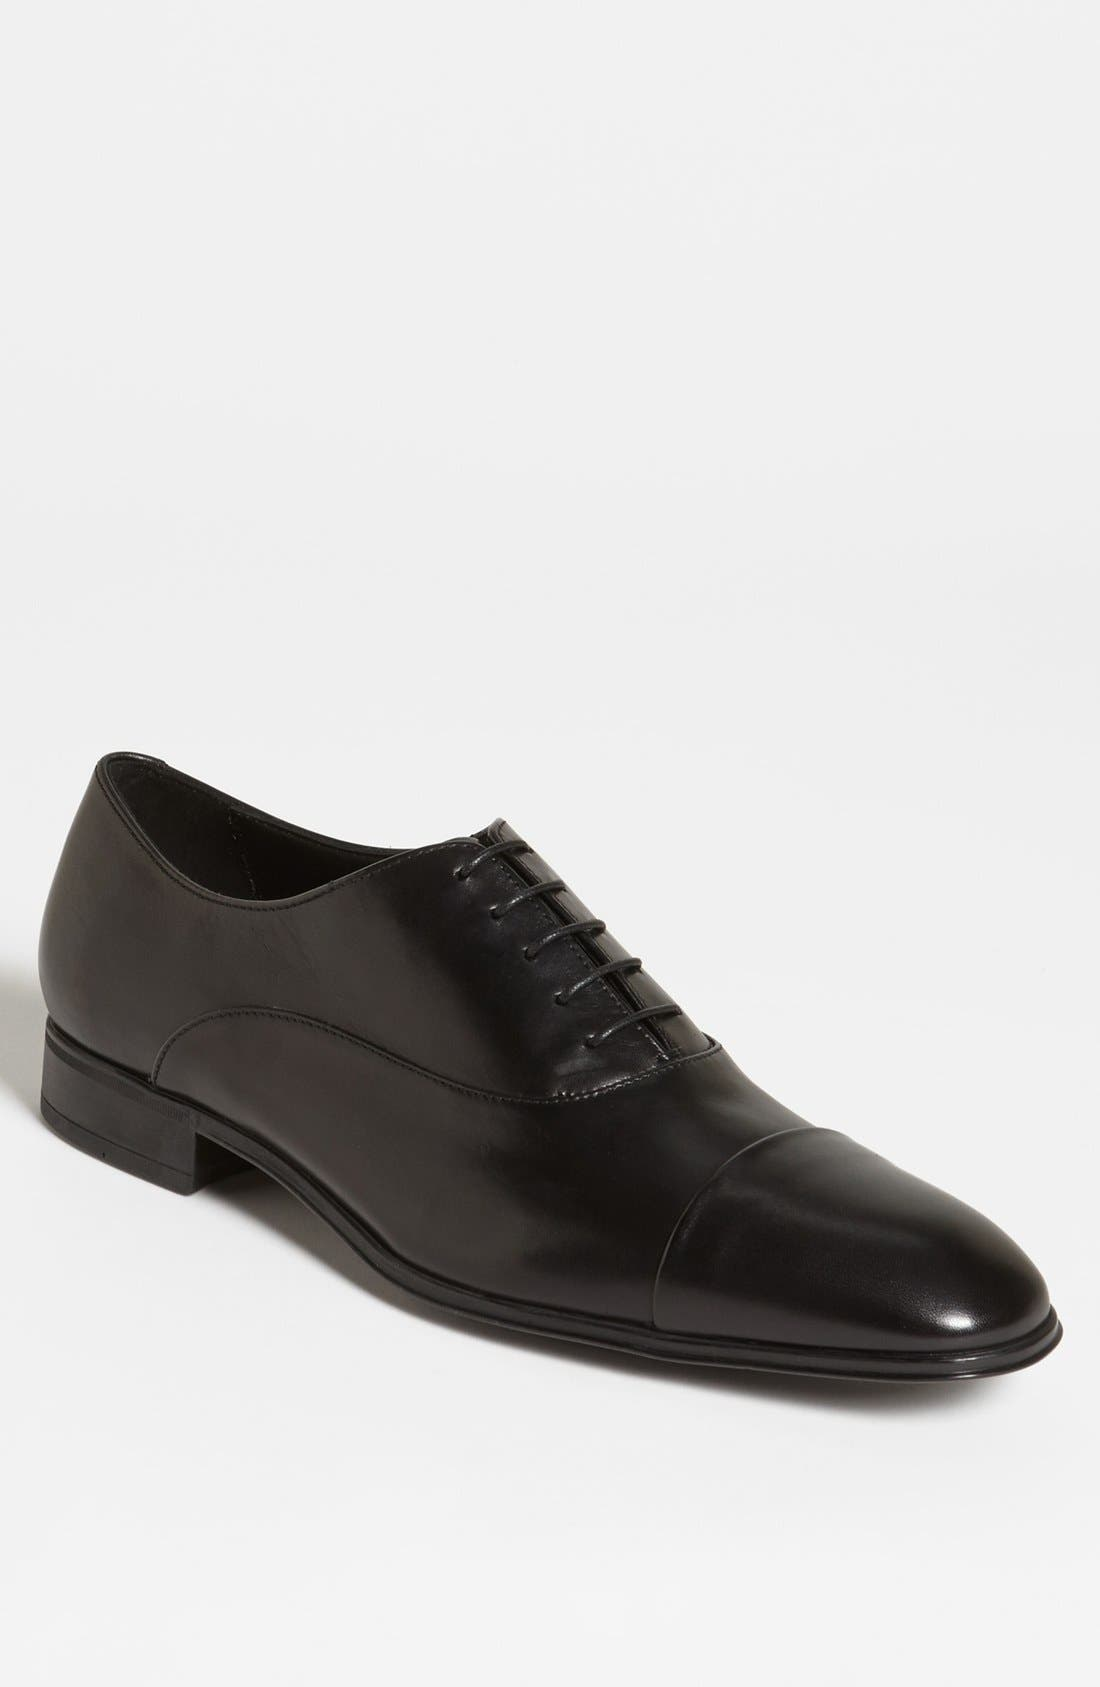 Main Image - Salvatore Ferragamo 'Fantino' Oxford